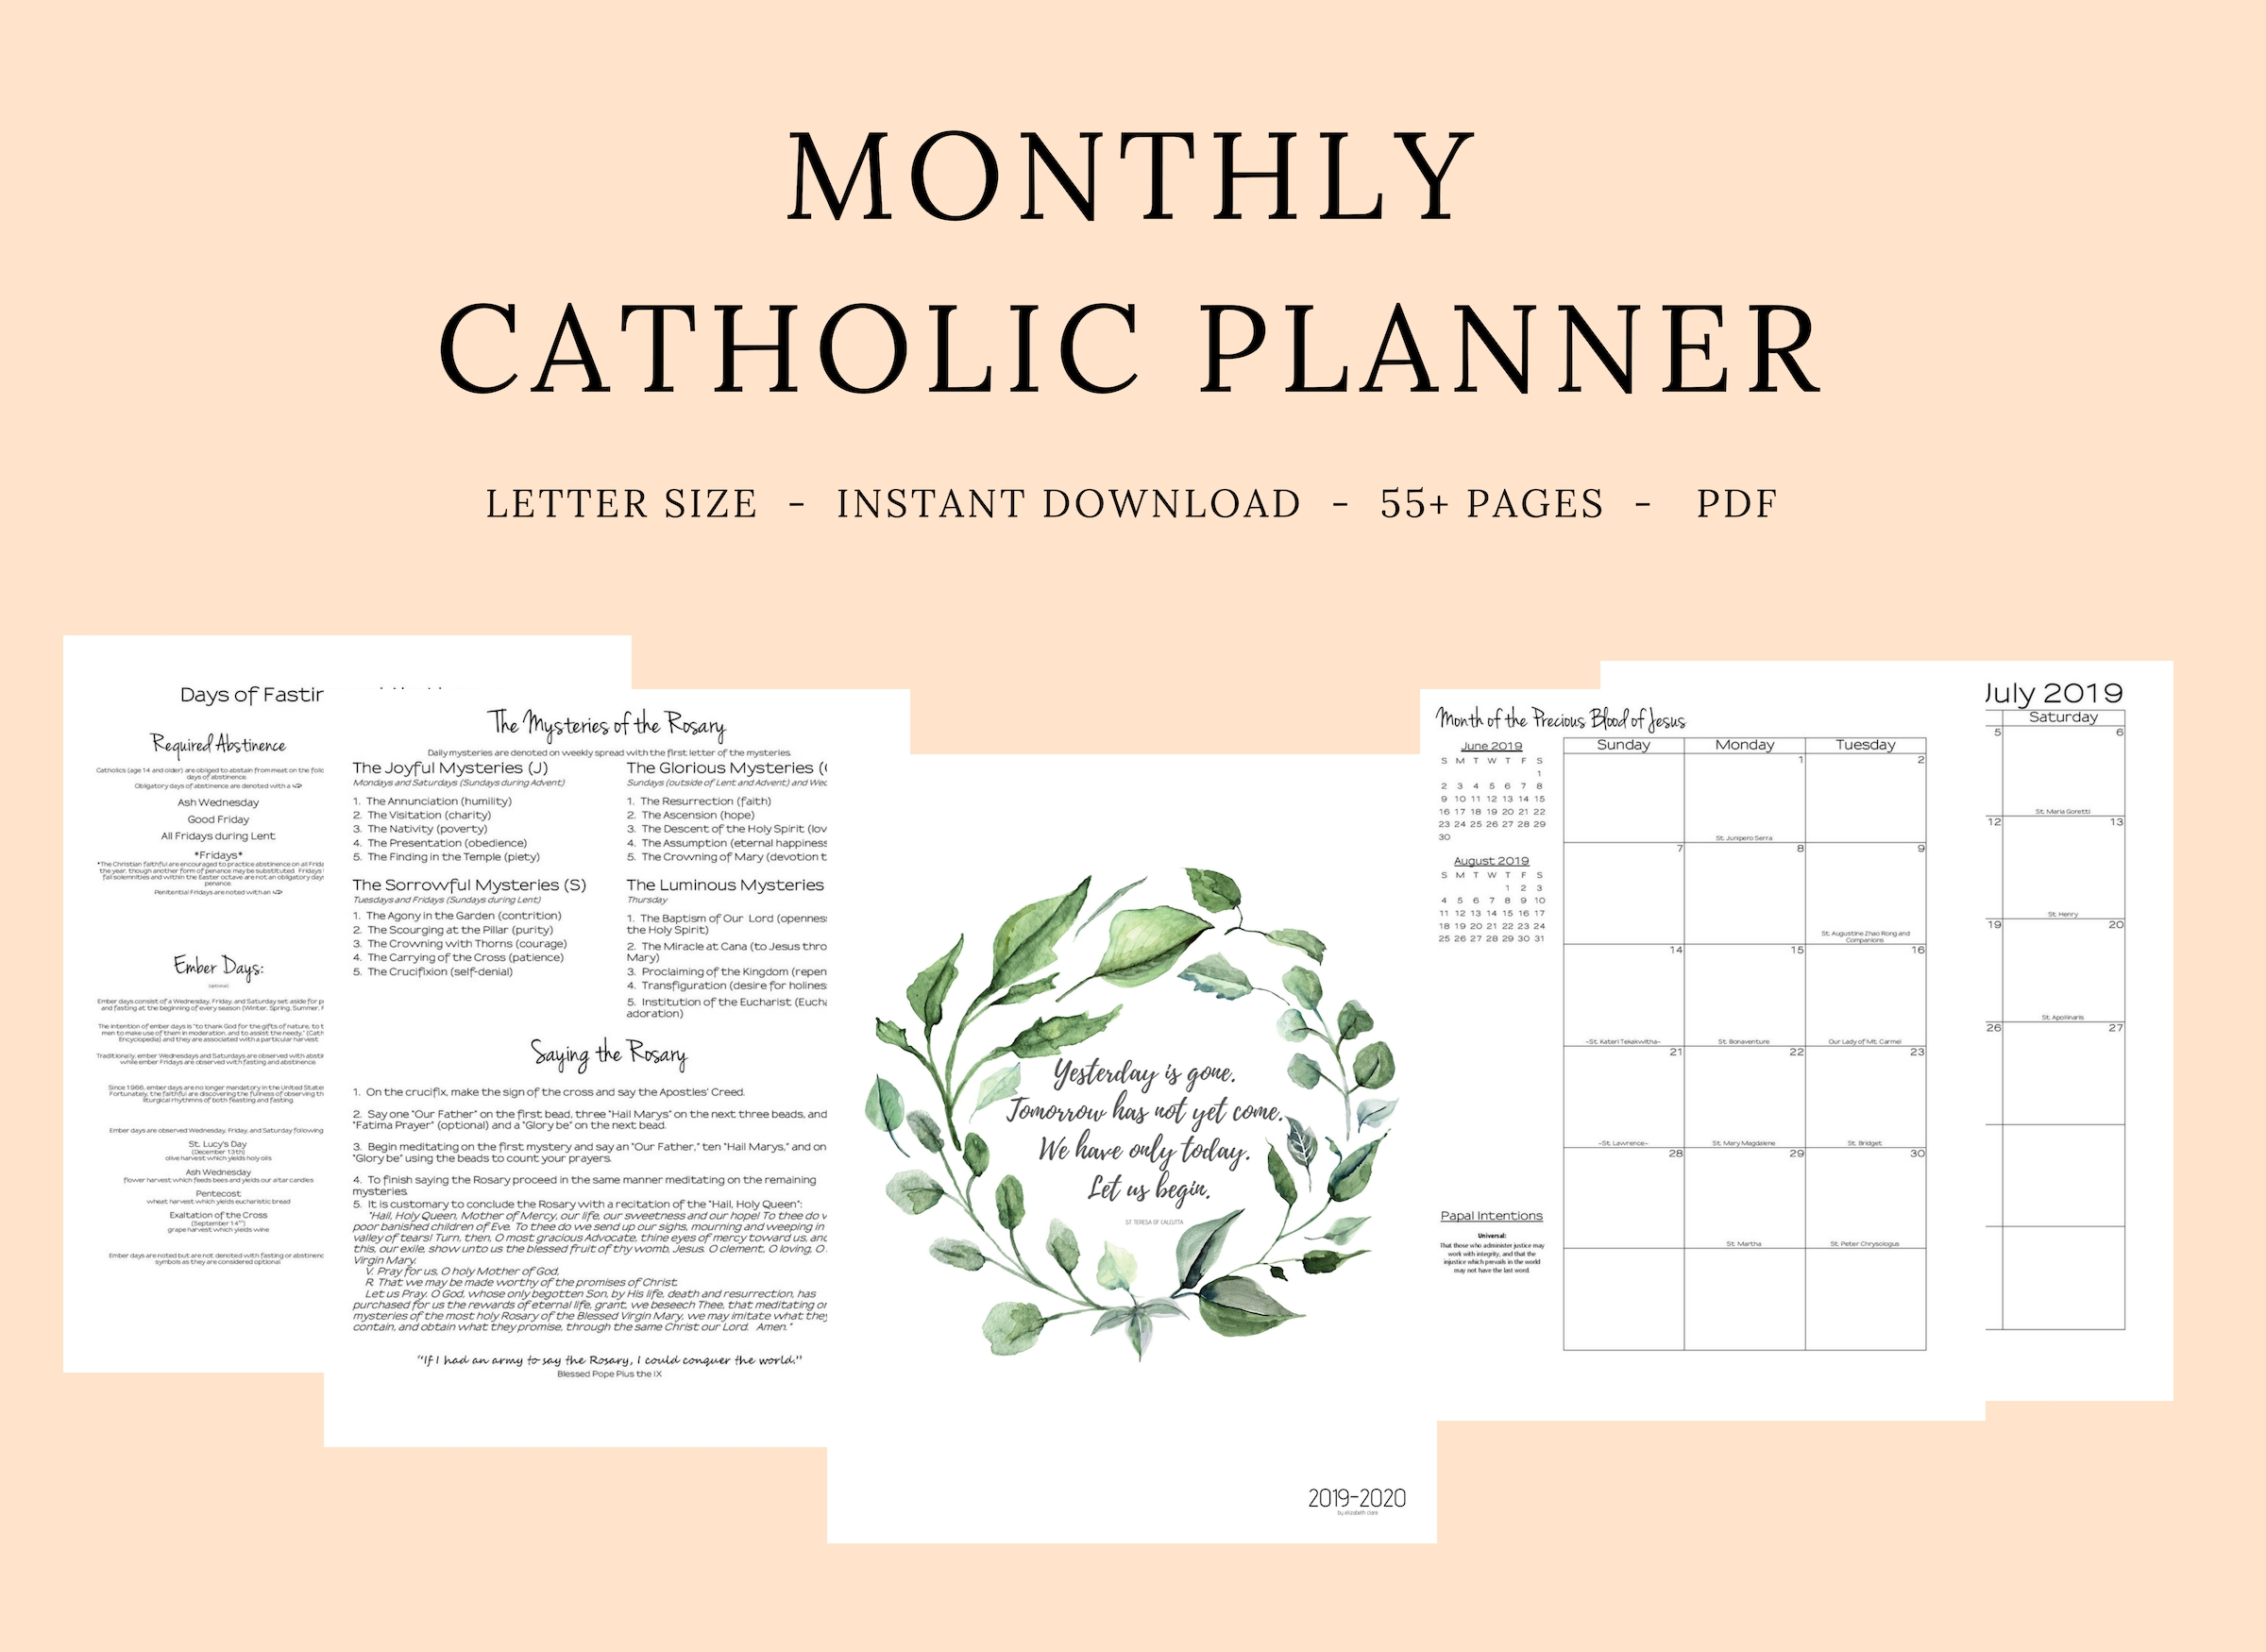 2019- 2020 Catholic Monthly Planner - Elizabeth Clare within Printable Catholic Liturgical Calendar 2020